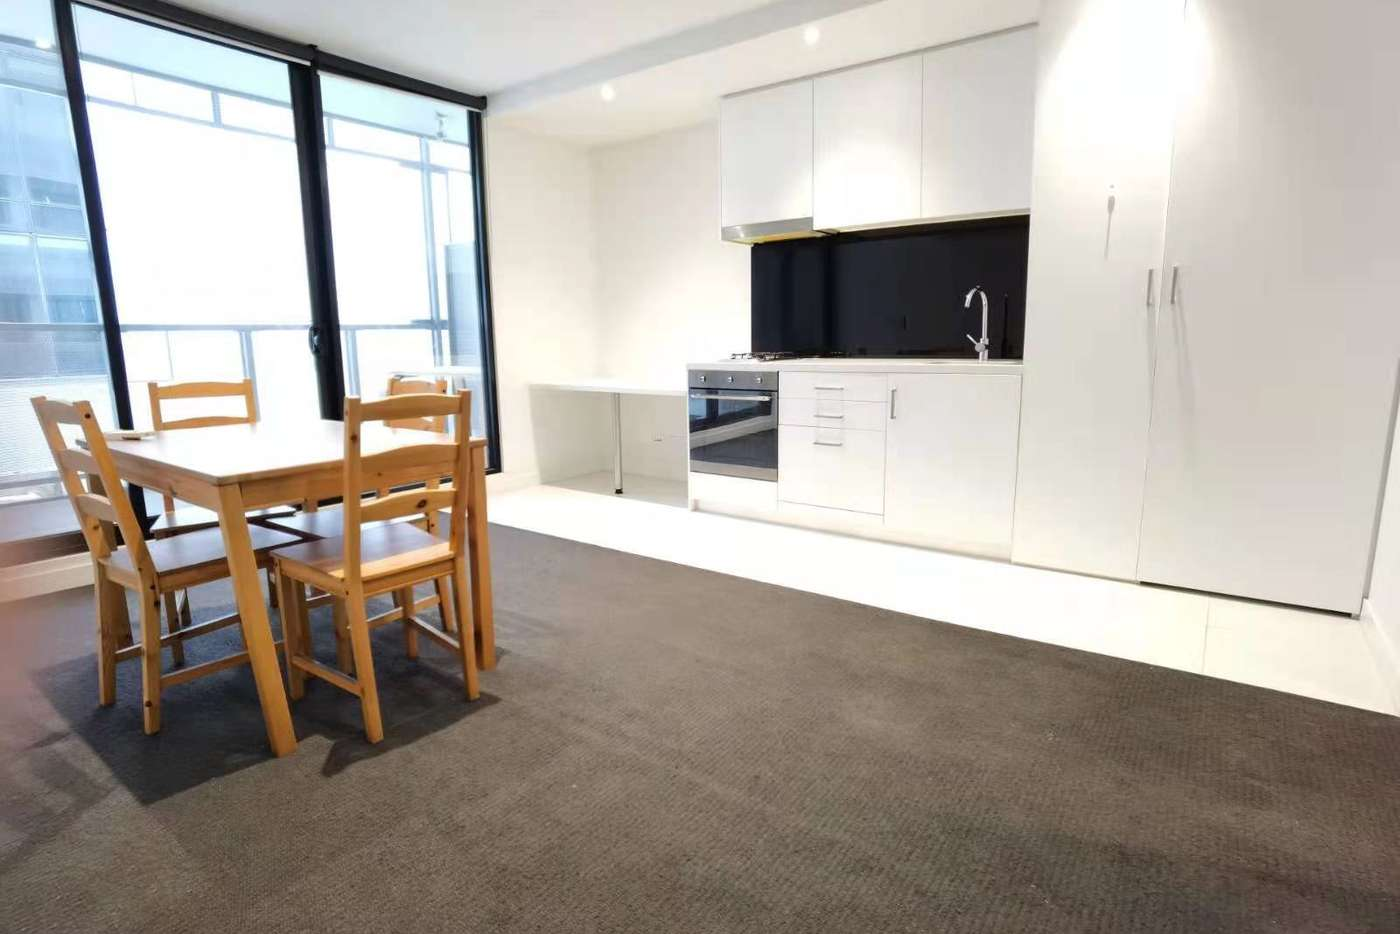 Main view of Homely apartment listing, 906/601 Little Collins Street, Melbourne VIC 3000